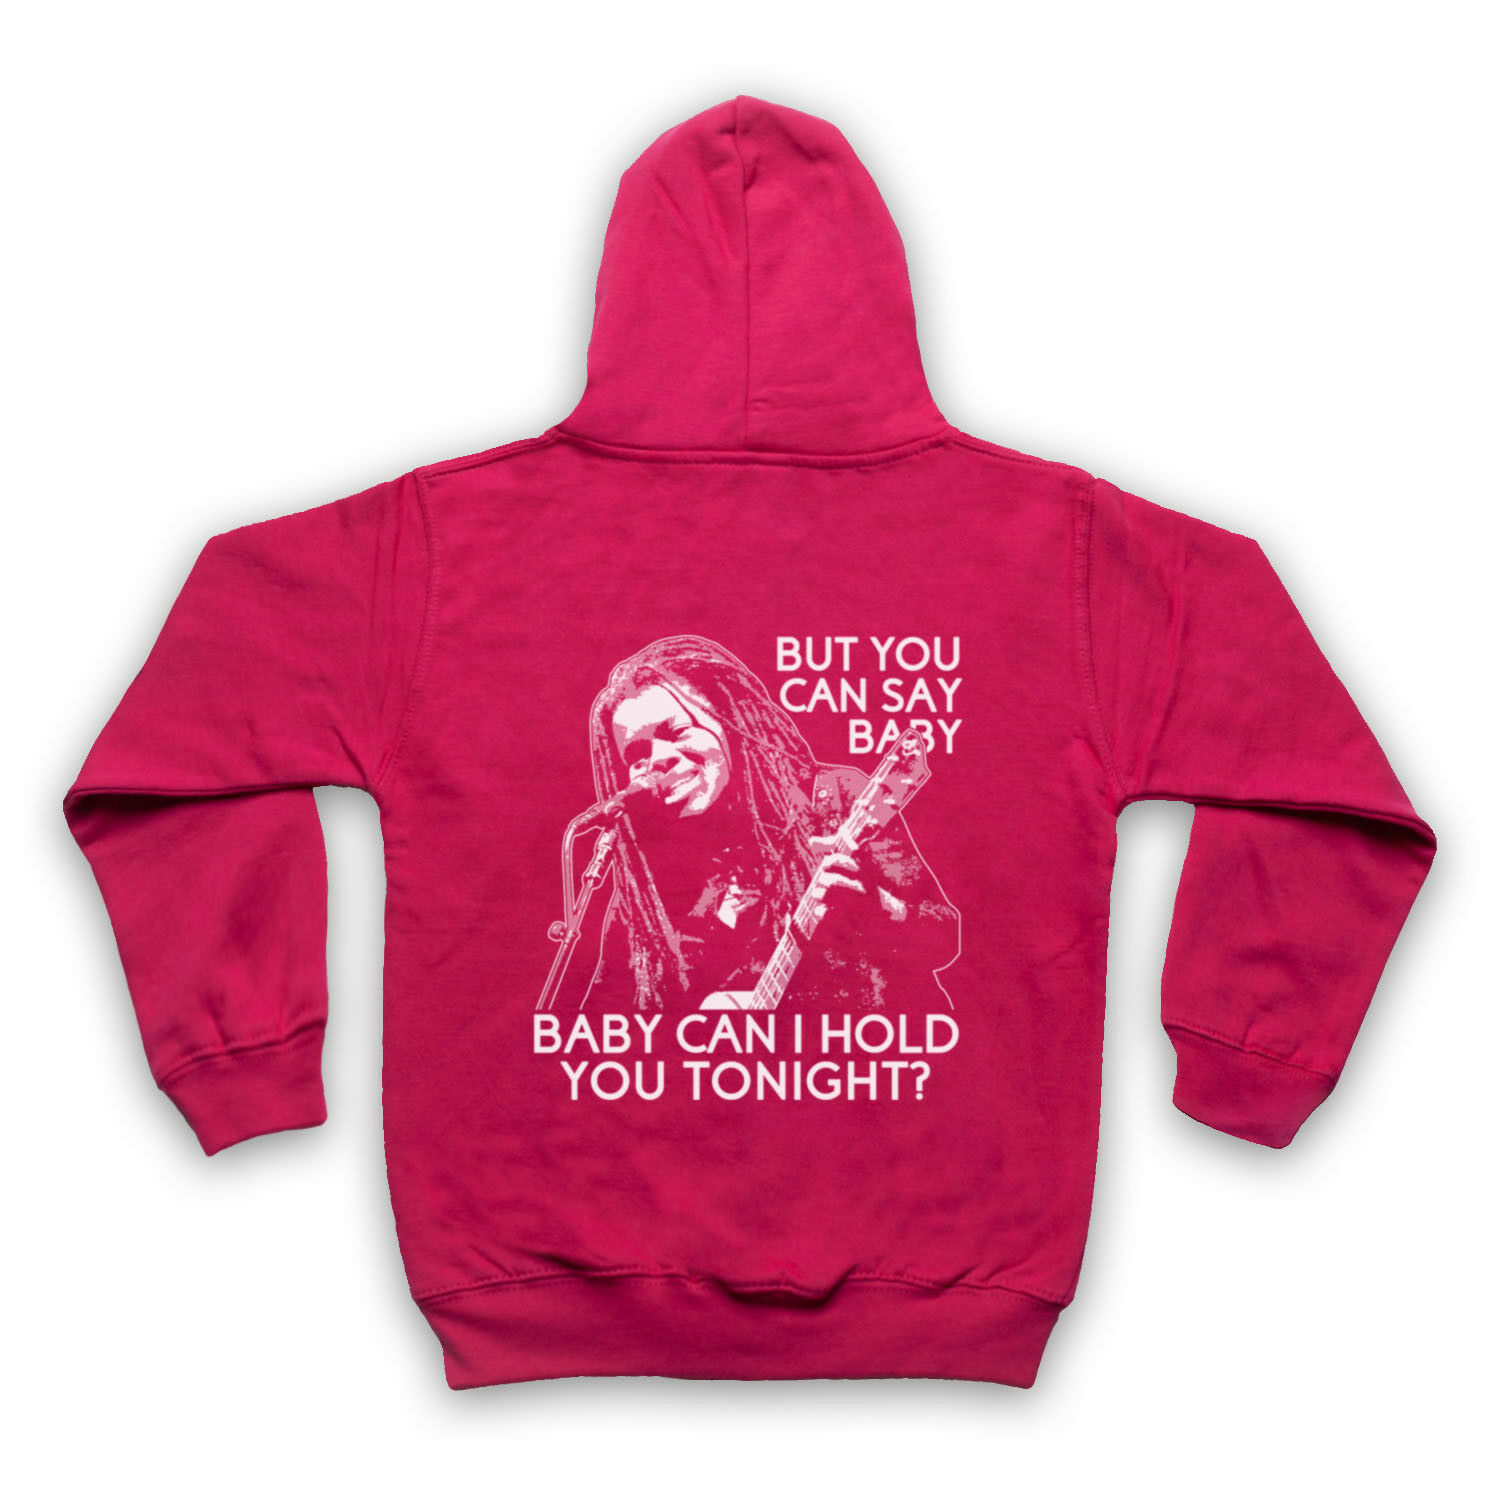 TRACY CHAPMAN UNOFFICIAL BABY BABY BABY CAN I HOLD YOU TONIGHT ADULTS & KIDS HOODIE | Hochwertige Materialien